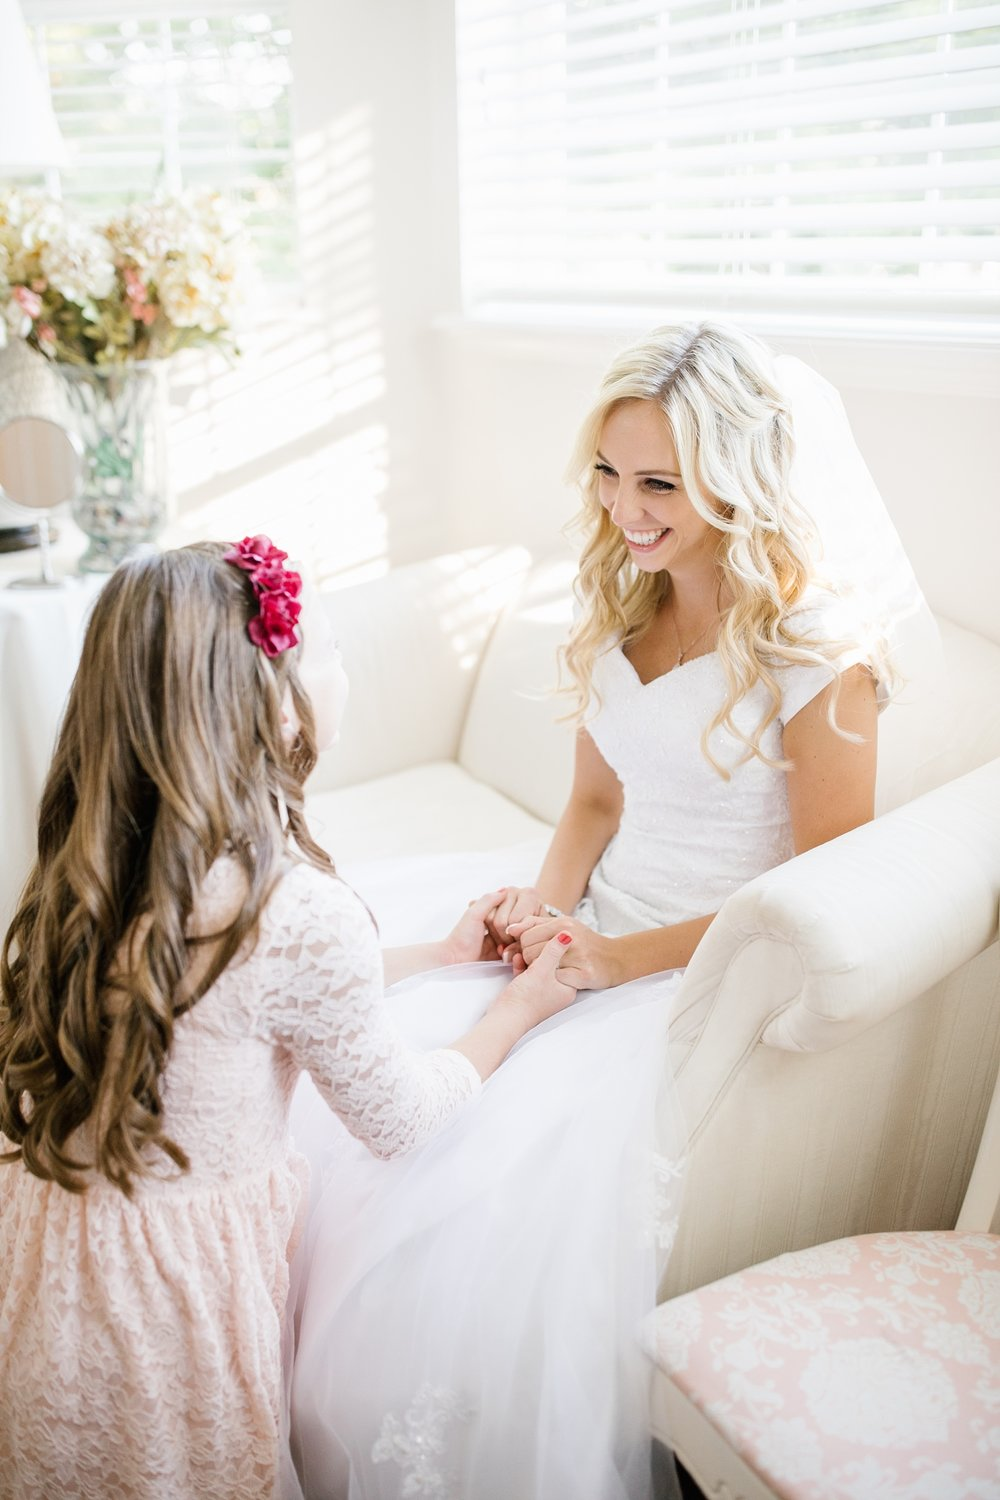 HannahChaseWedding-340_Lizzie-B-Imagery-Utah-Wedding-Photographer-Bridal-Photography-Payson-Utah-Temple-Clarion-Gardens-Catering-and-Events-Center.jpg